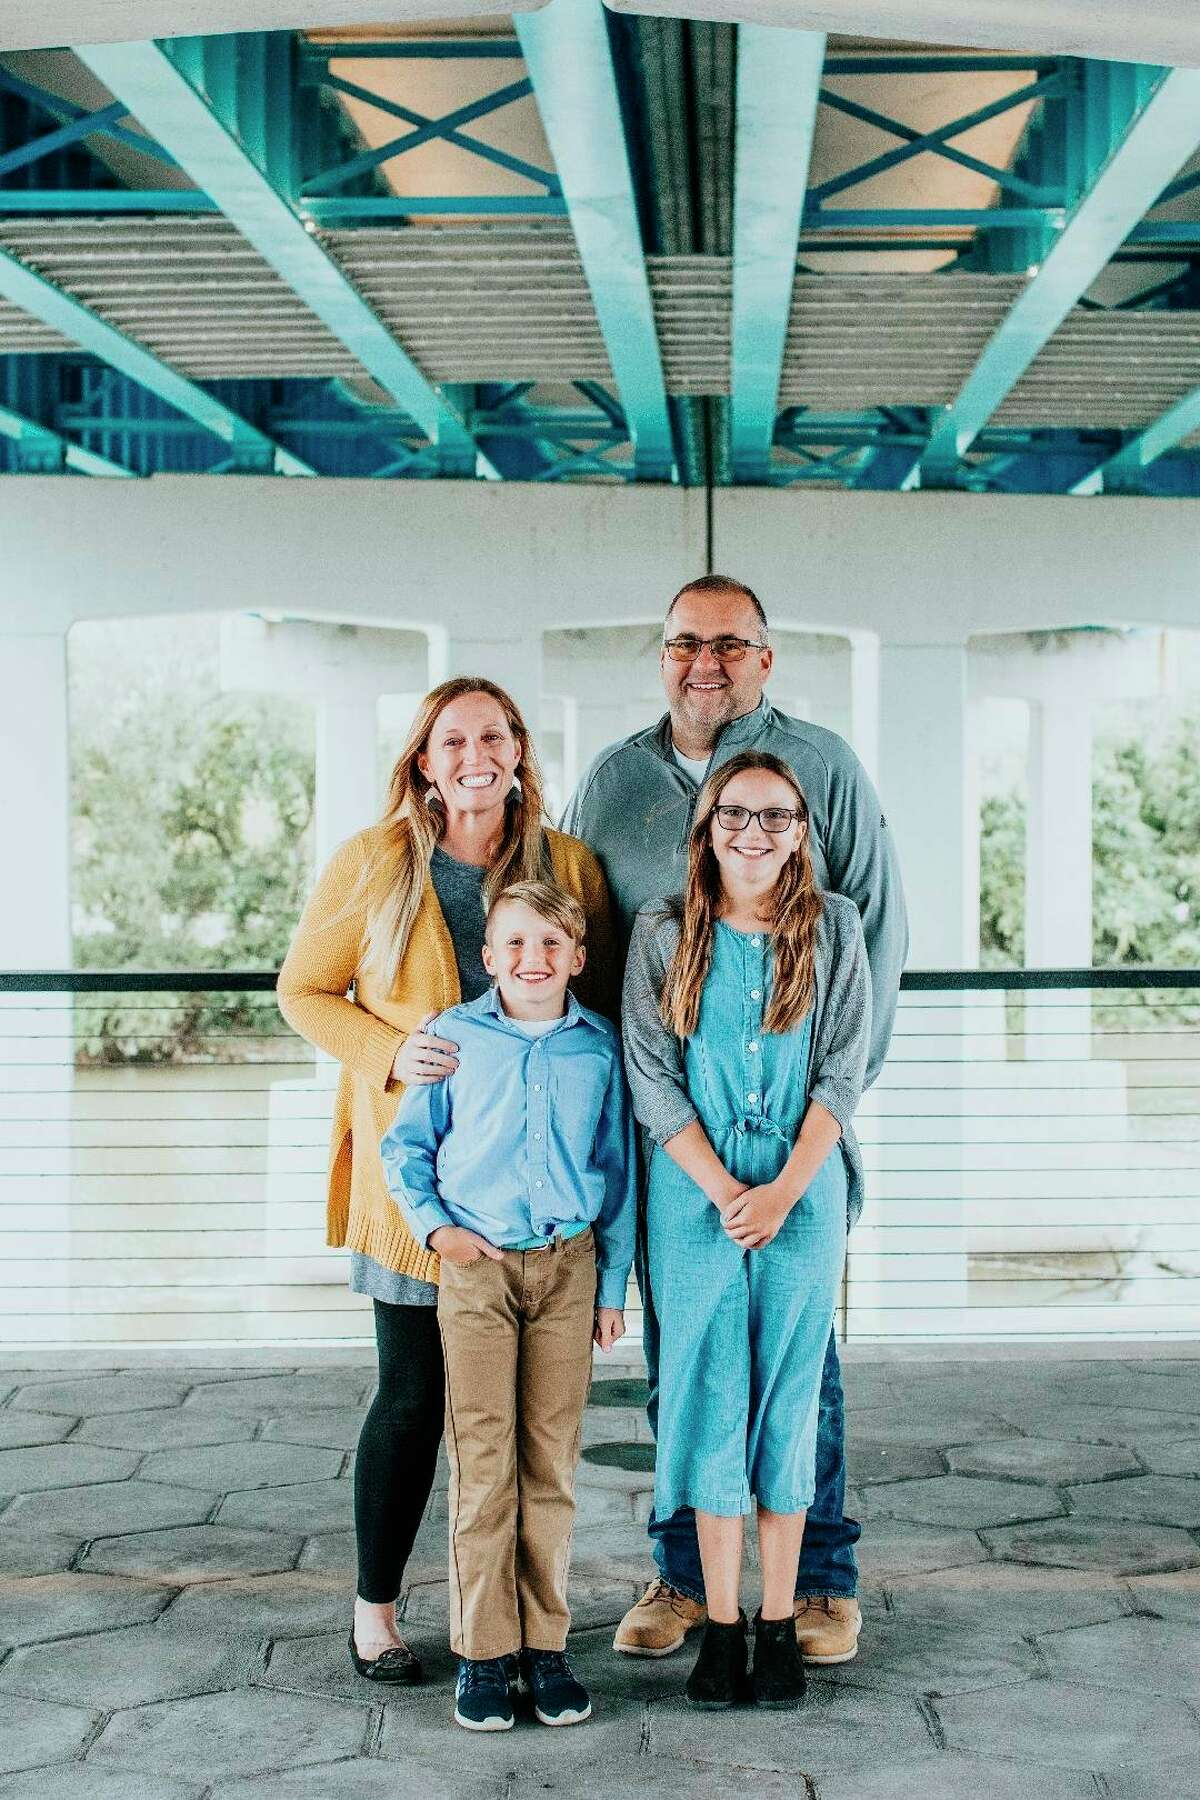 Beginning a new church in Sanford as a family are,clockwise from top left, Jamie Engler, John Engler and their children, Isabelle and Jackson. The church is called ONECHURCH and its first service is expected to be inlate October.